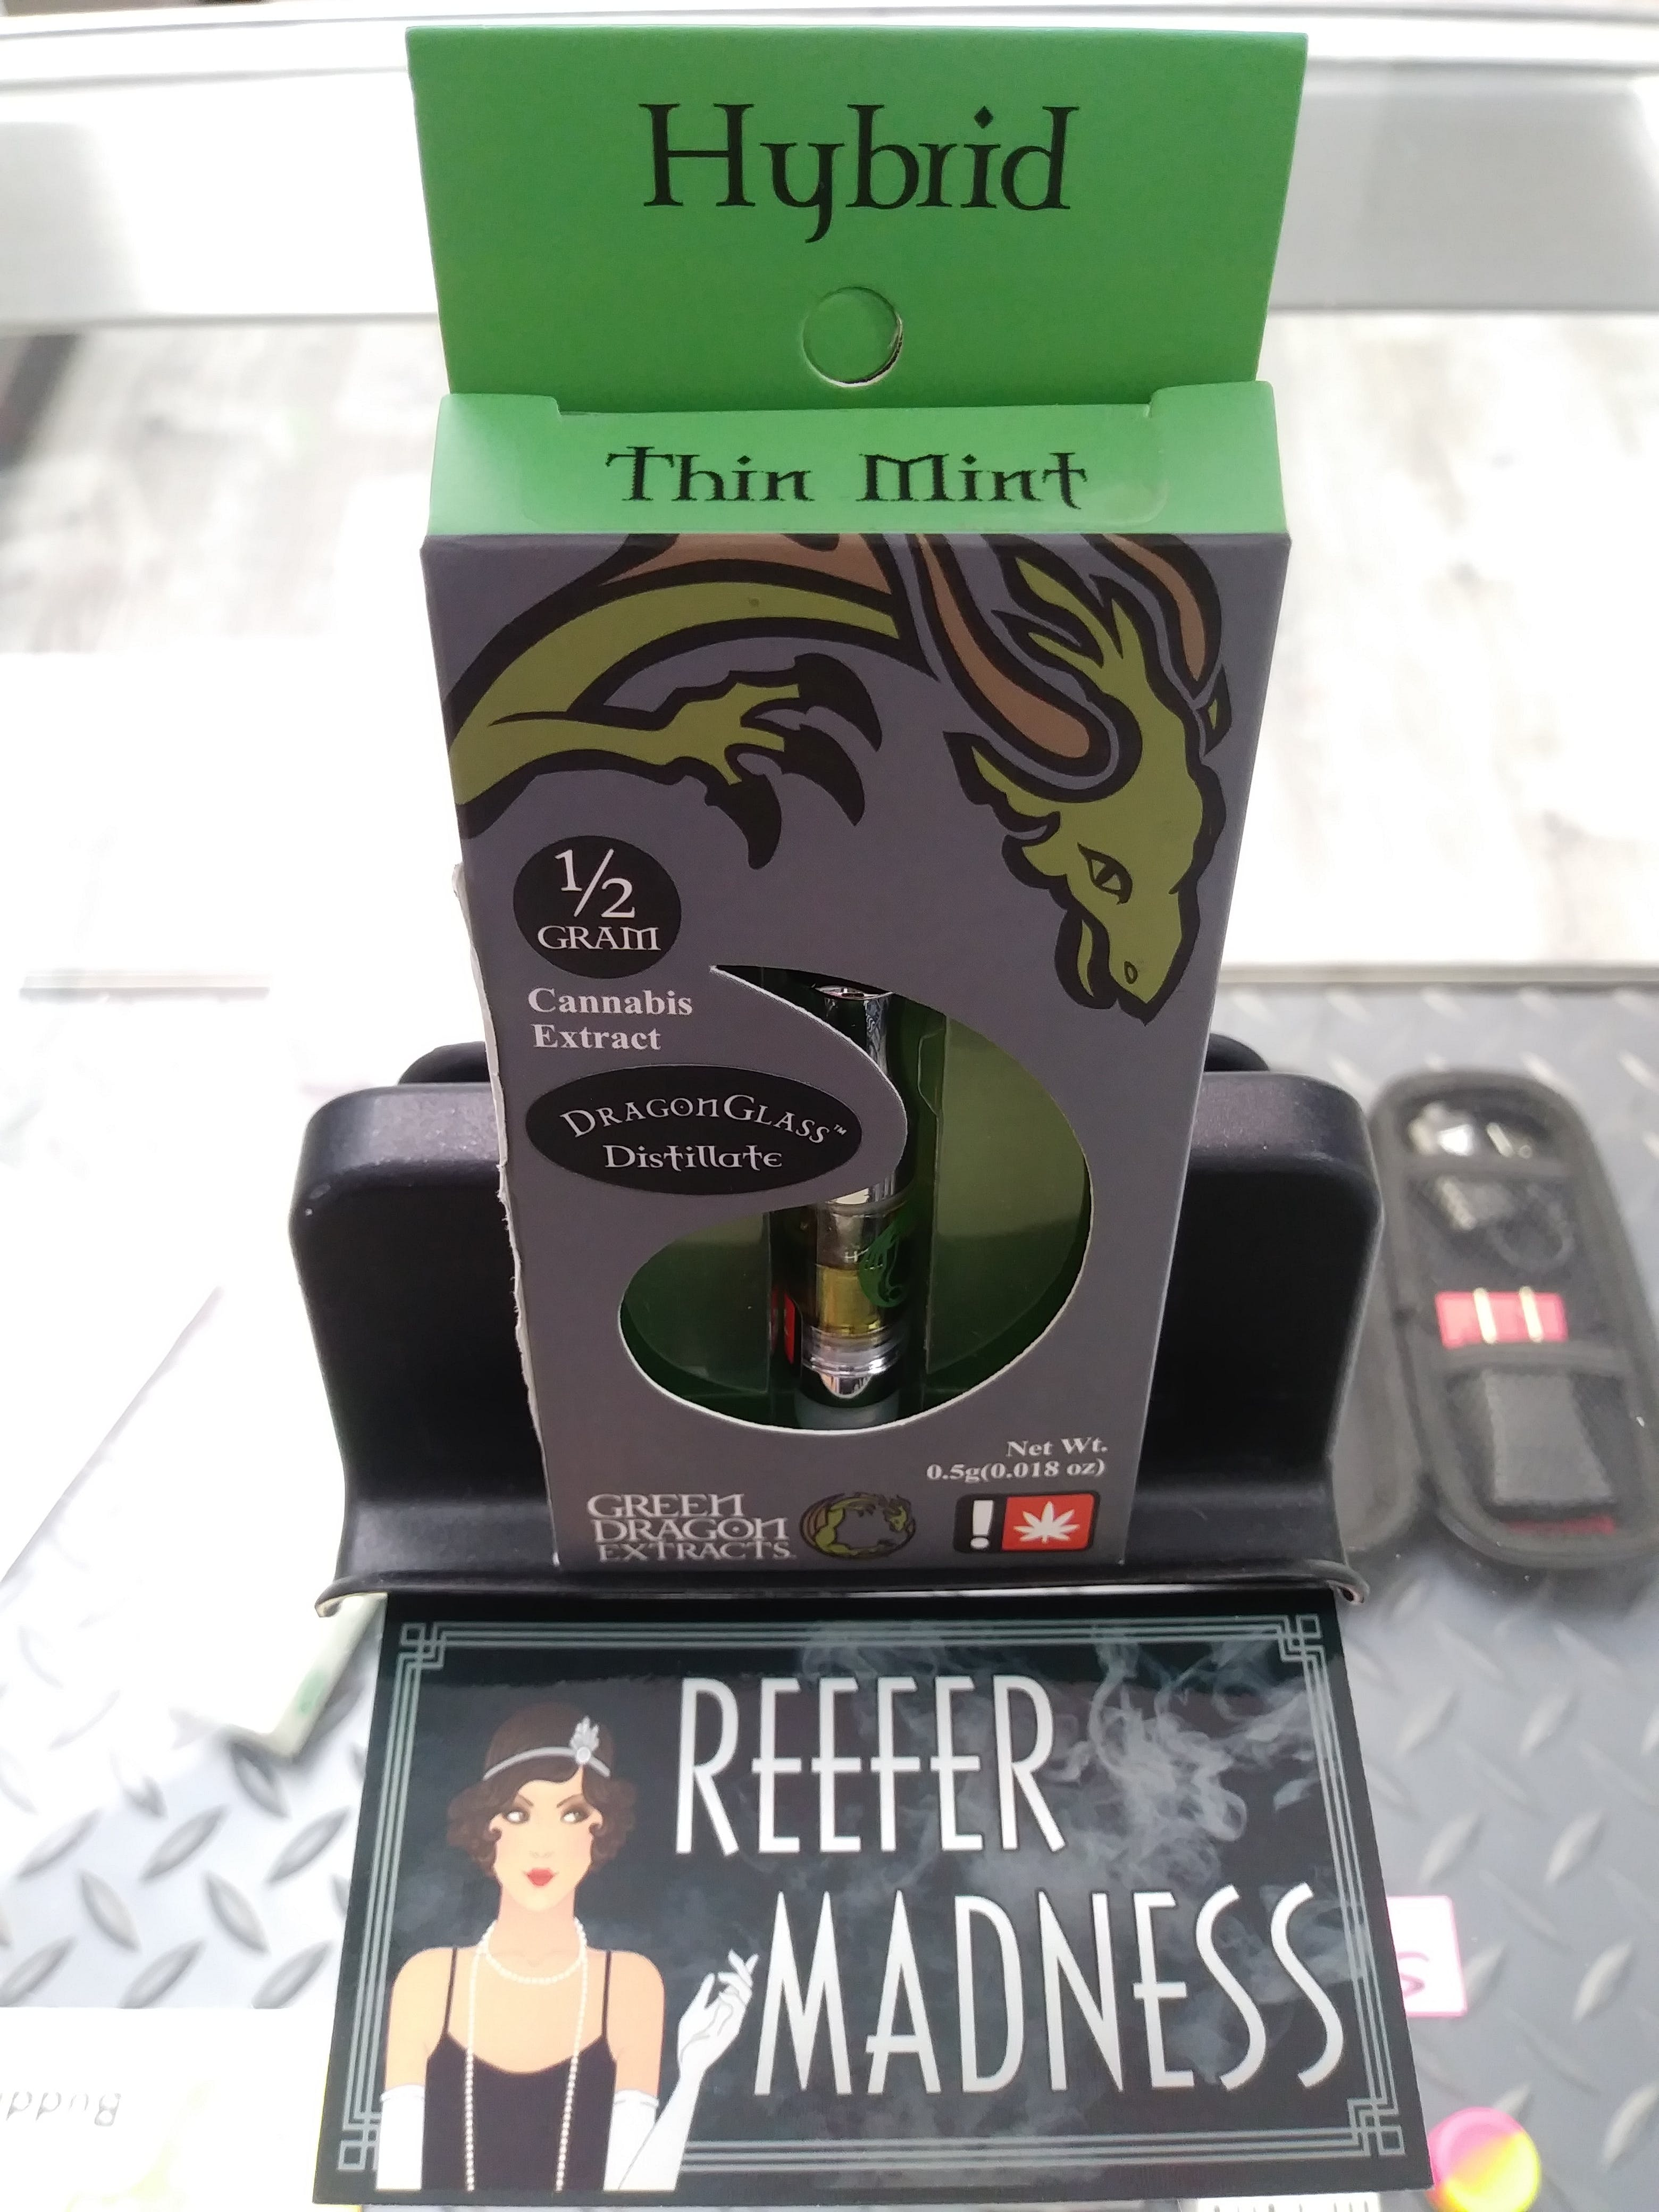 concentrate-green-dragon-extracts-green-dragon-0-5g-thin-mint-cartridge-thc-80-3-25-cbd-0-94-25